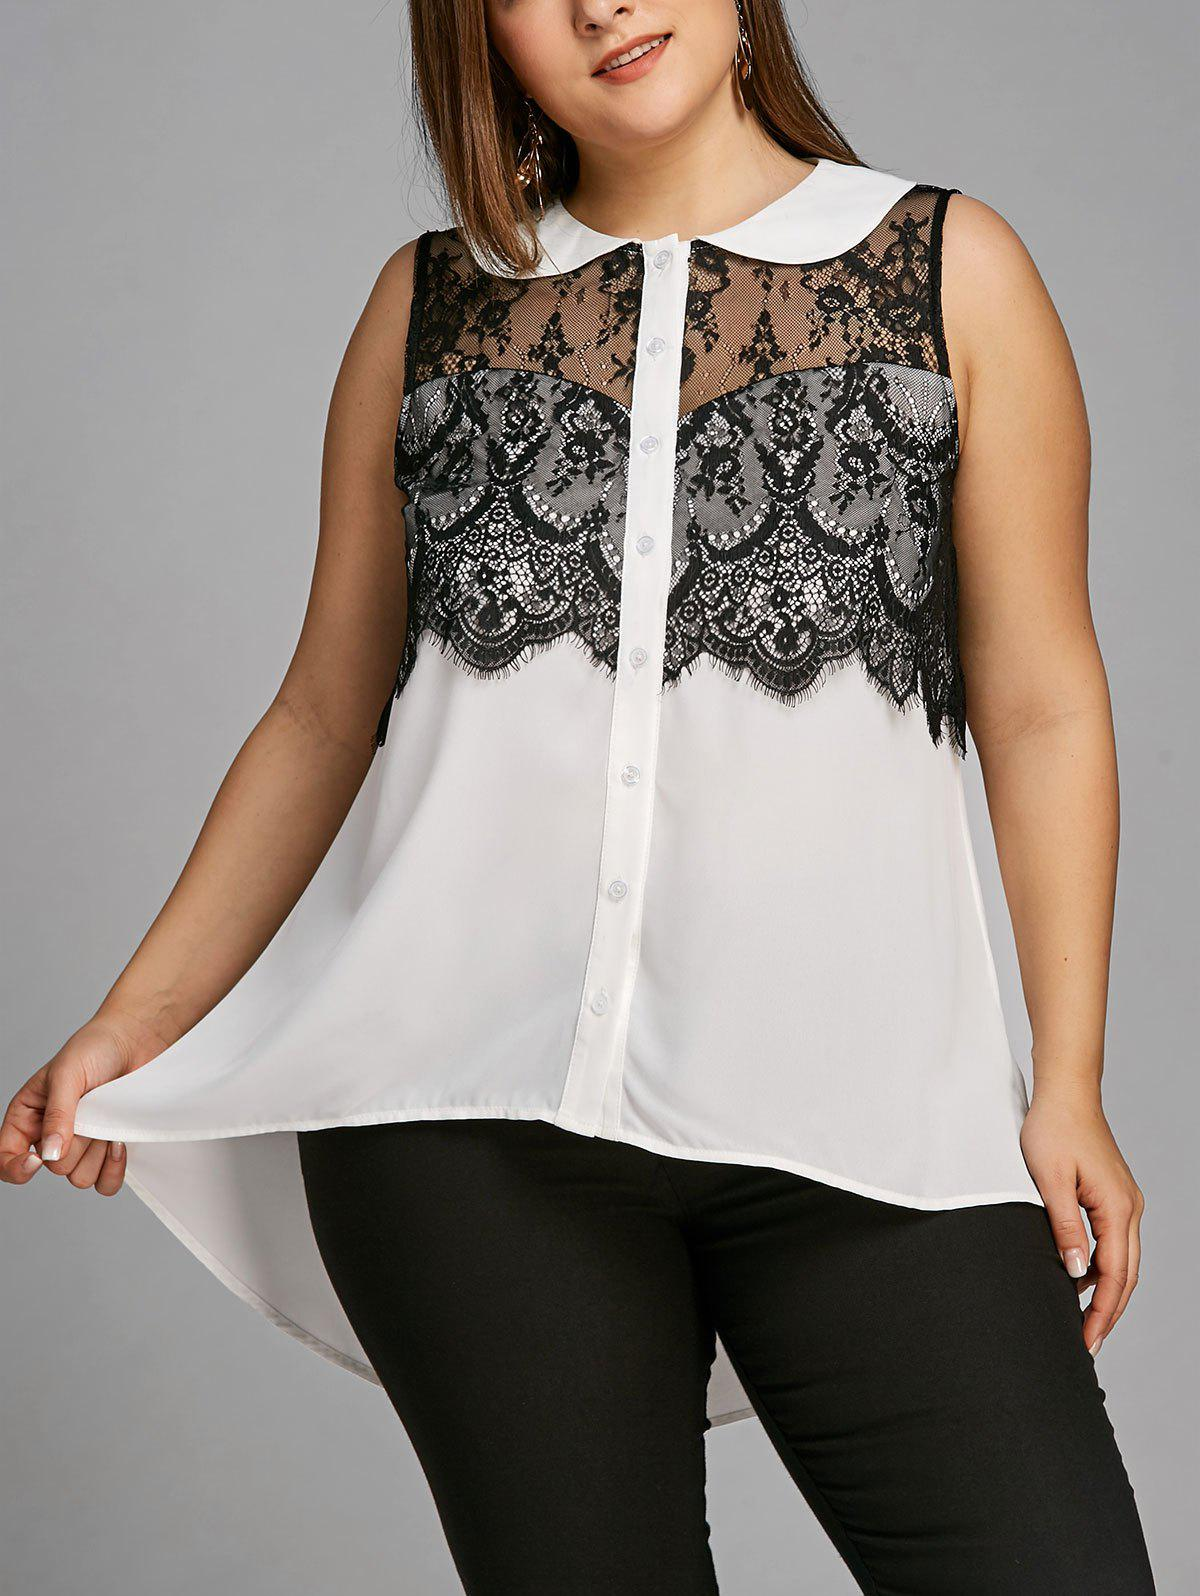 Plus Size Peter Pan Collar Lace Trim Sleeveless Blouse - WHITE/BLACK XL